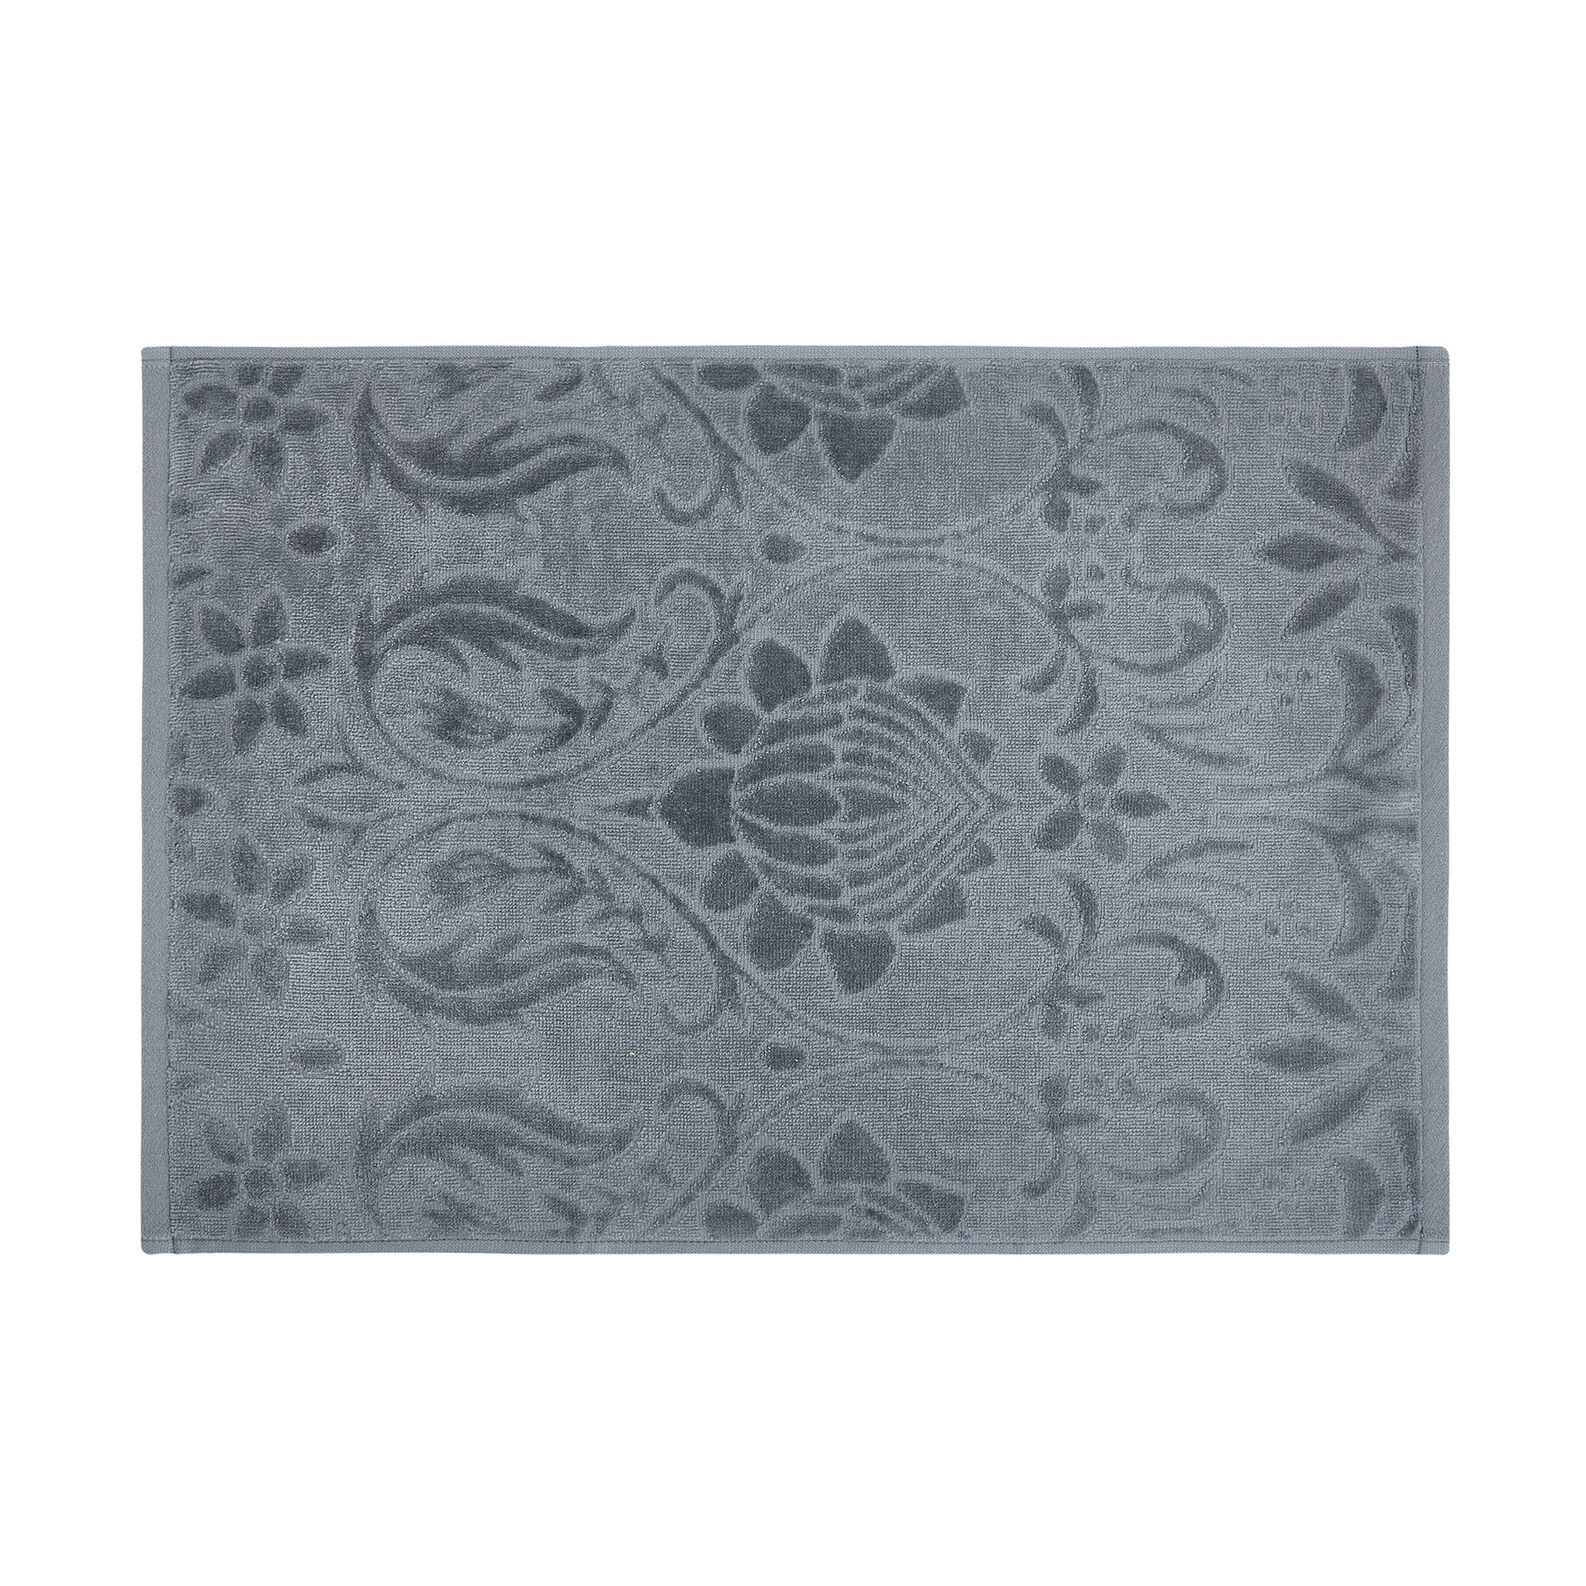 100% cotton towel with damask design